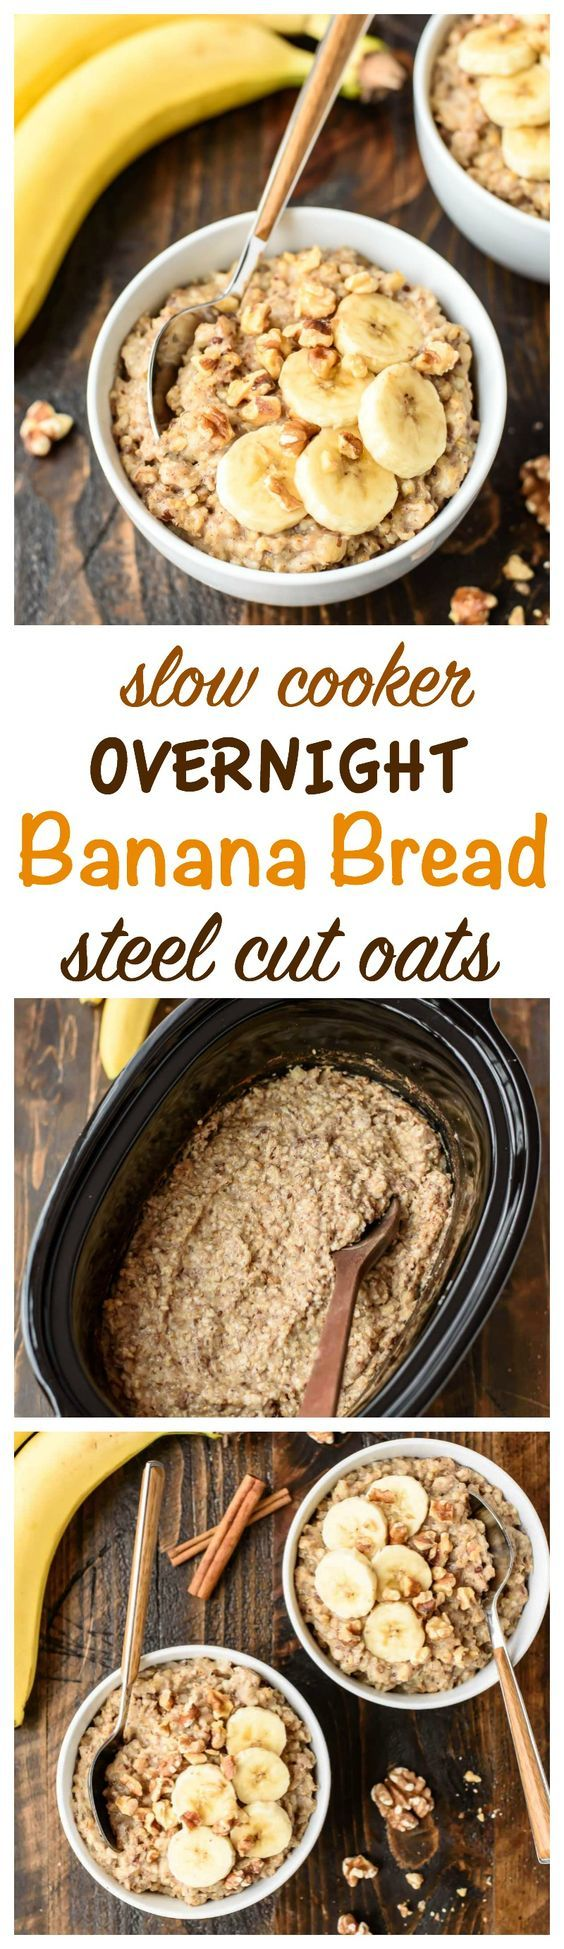 how to get ripe bananas fast